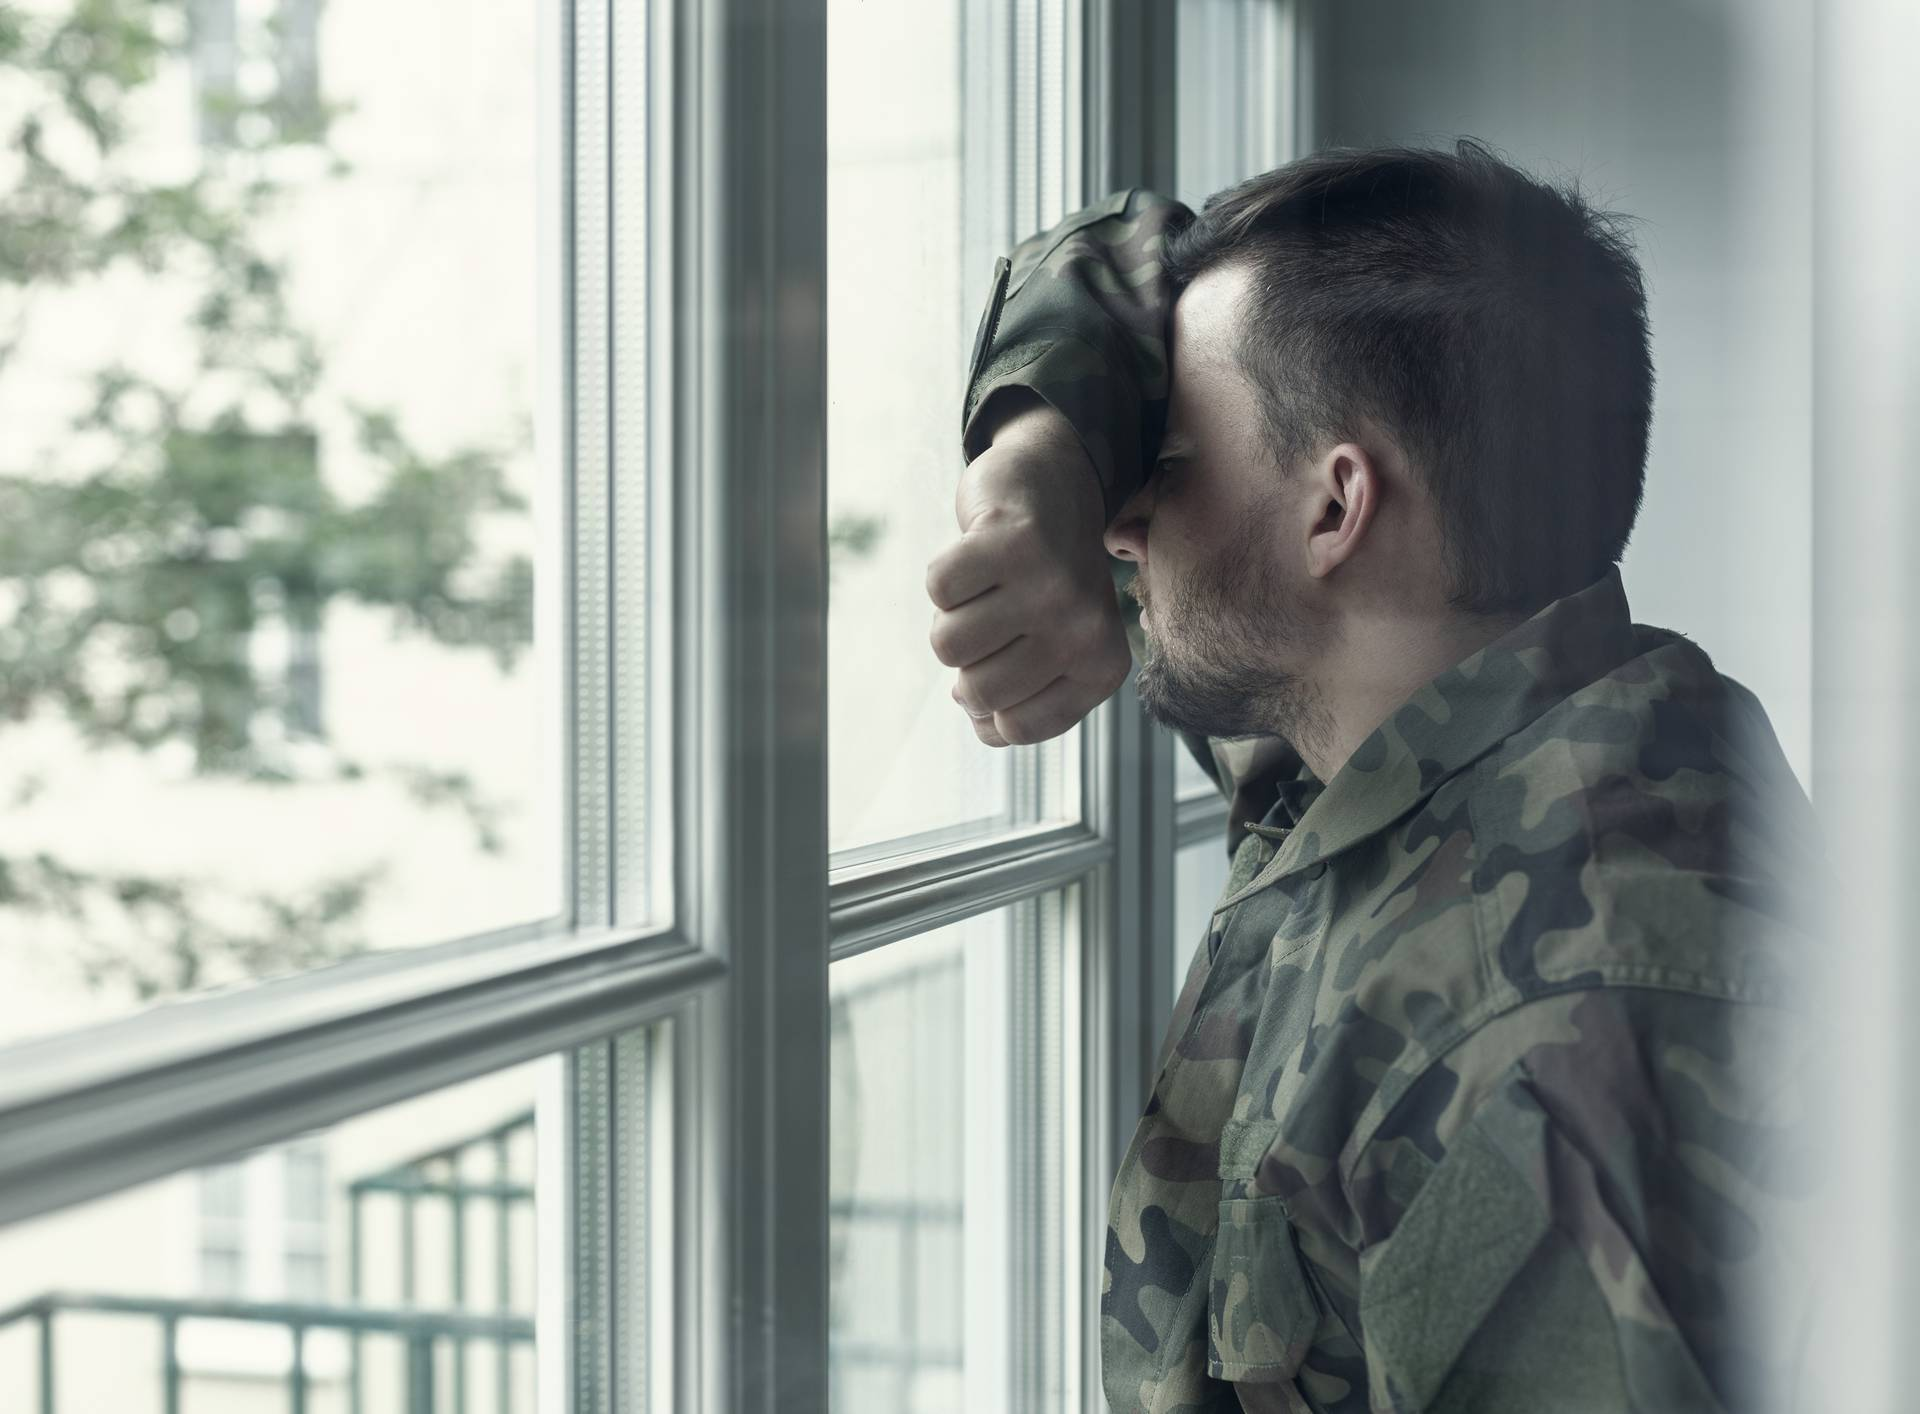 Depressed and sad soldier in green uniform with trauma after war standing near the window